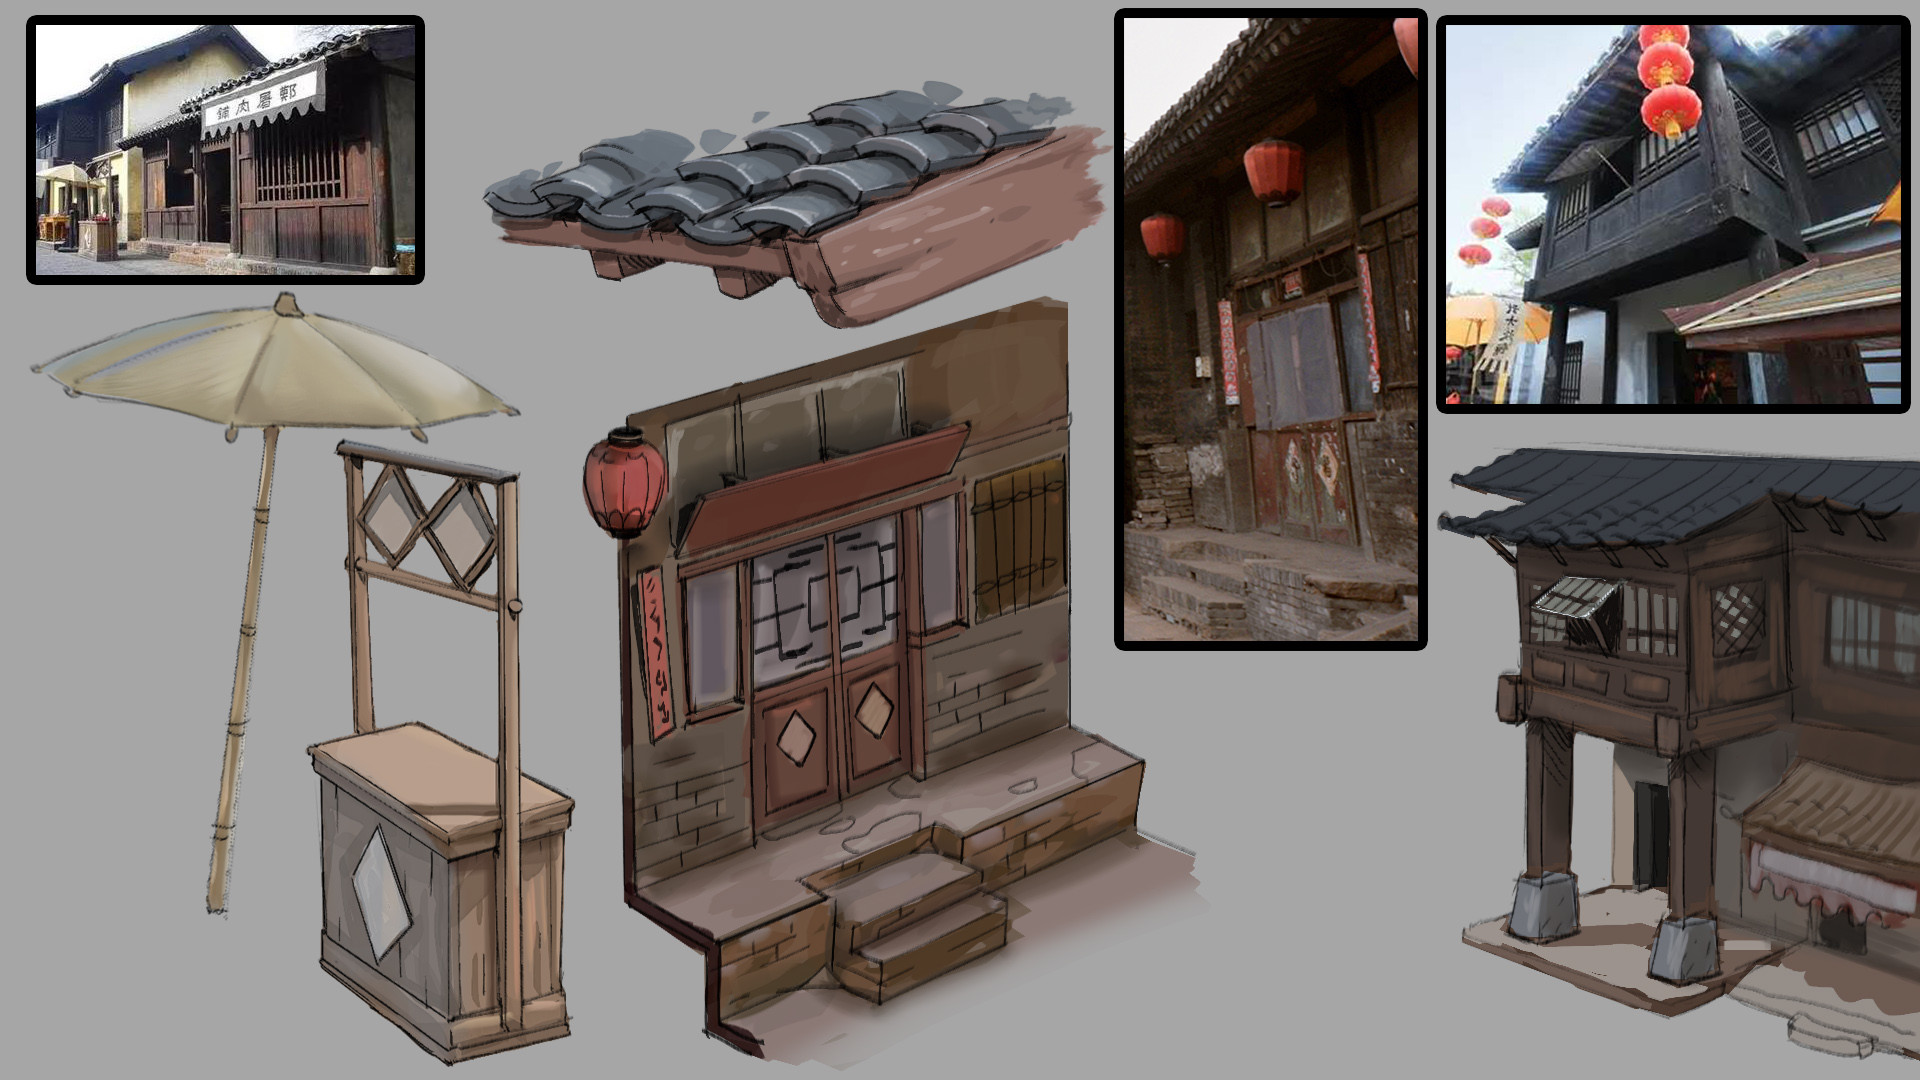 Loic liok bramoulle story enviro sketches 04